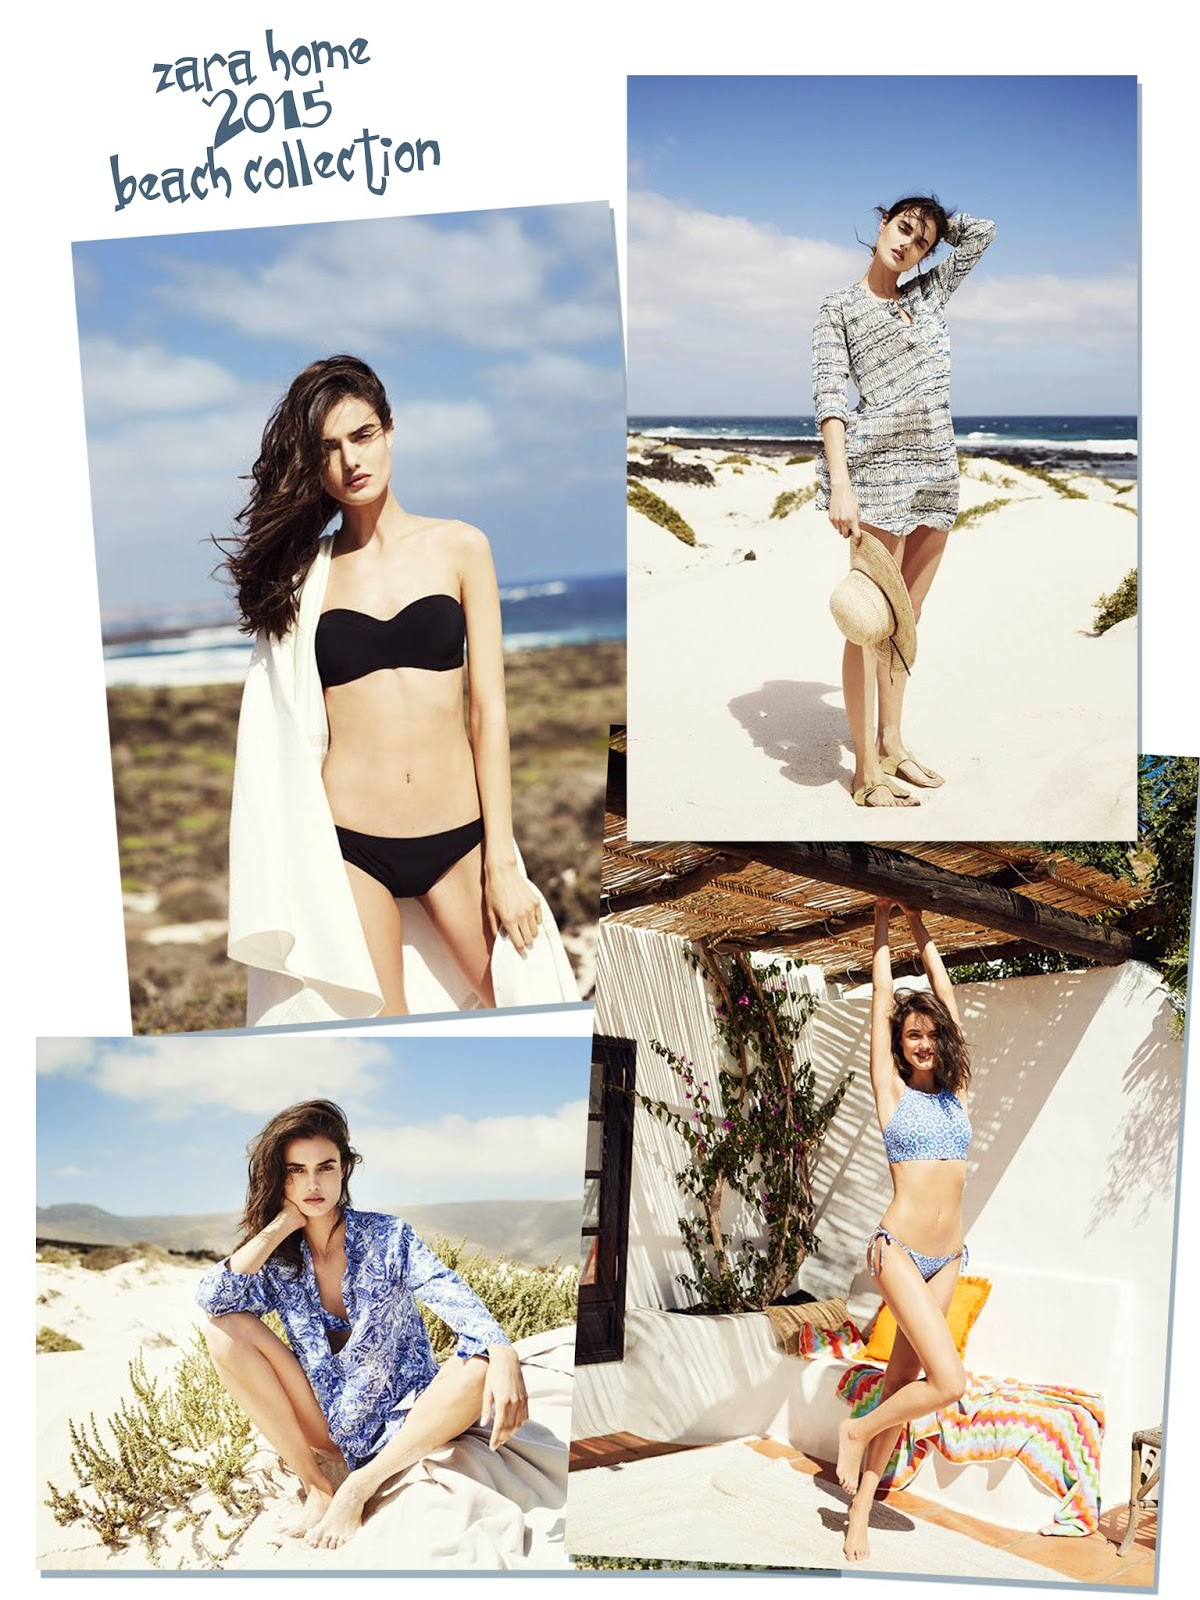 photo-zara_home-beach_collection-2015-blanca_padilla